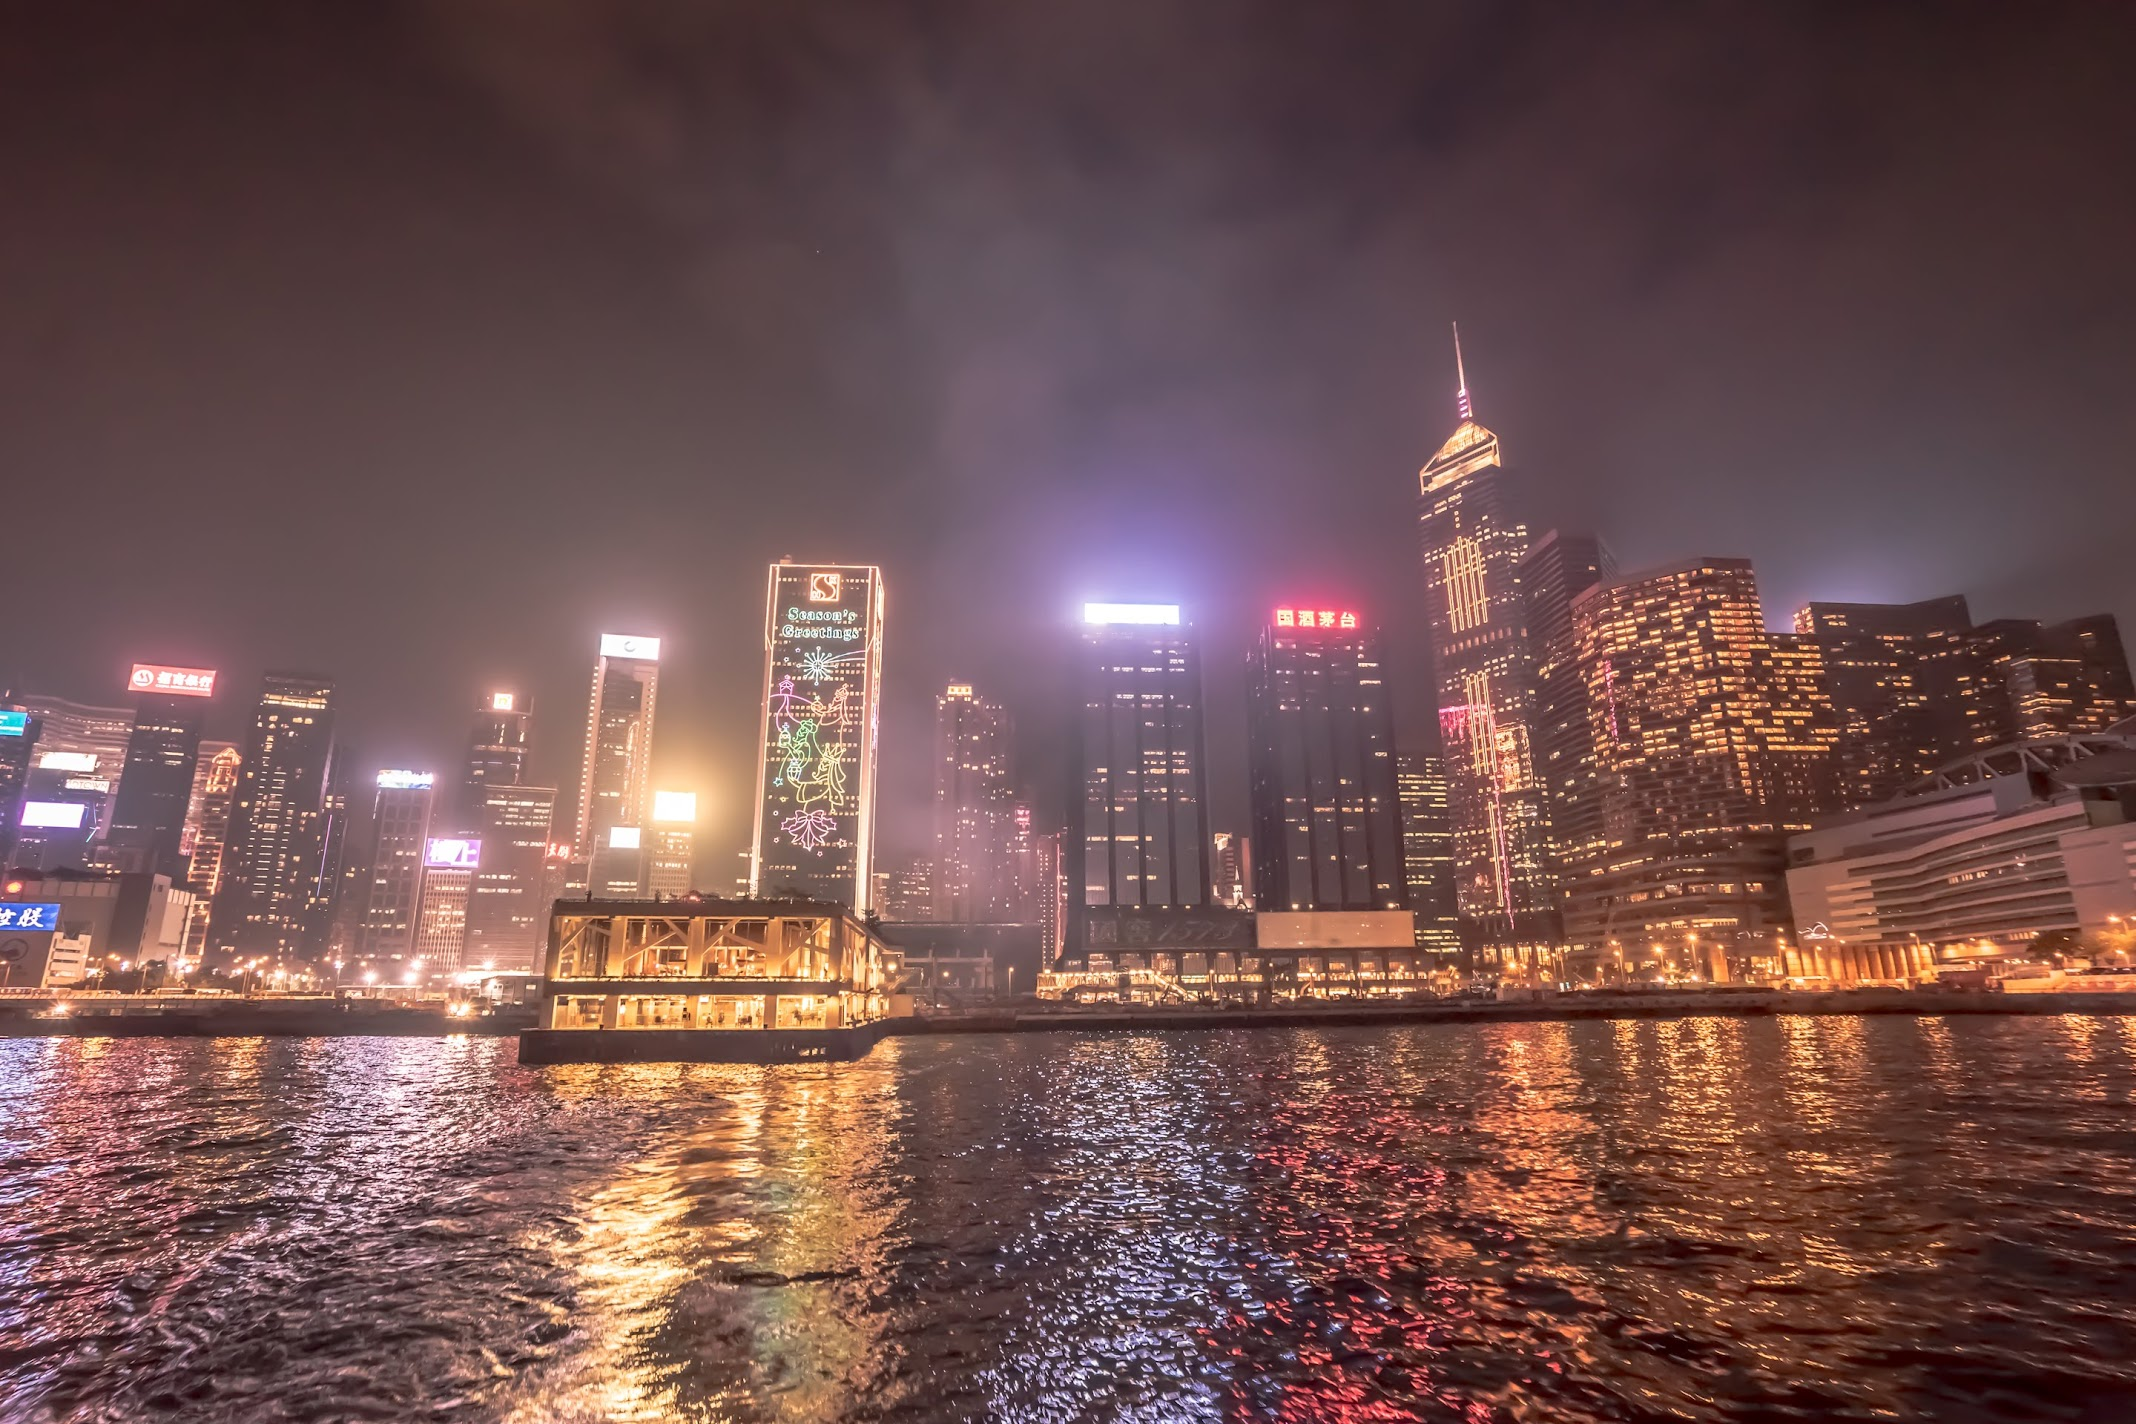 Hong Kong Star Ferry night view1